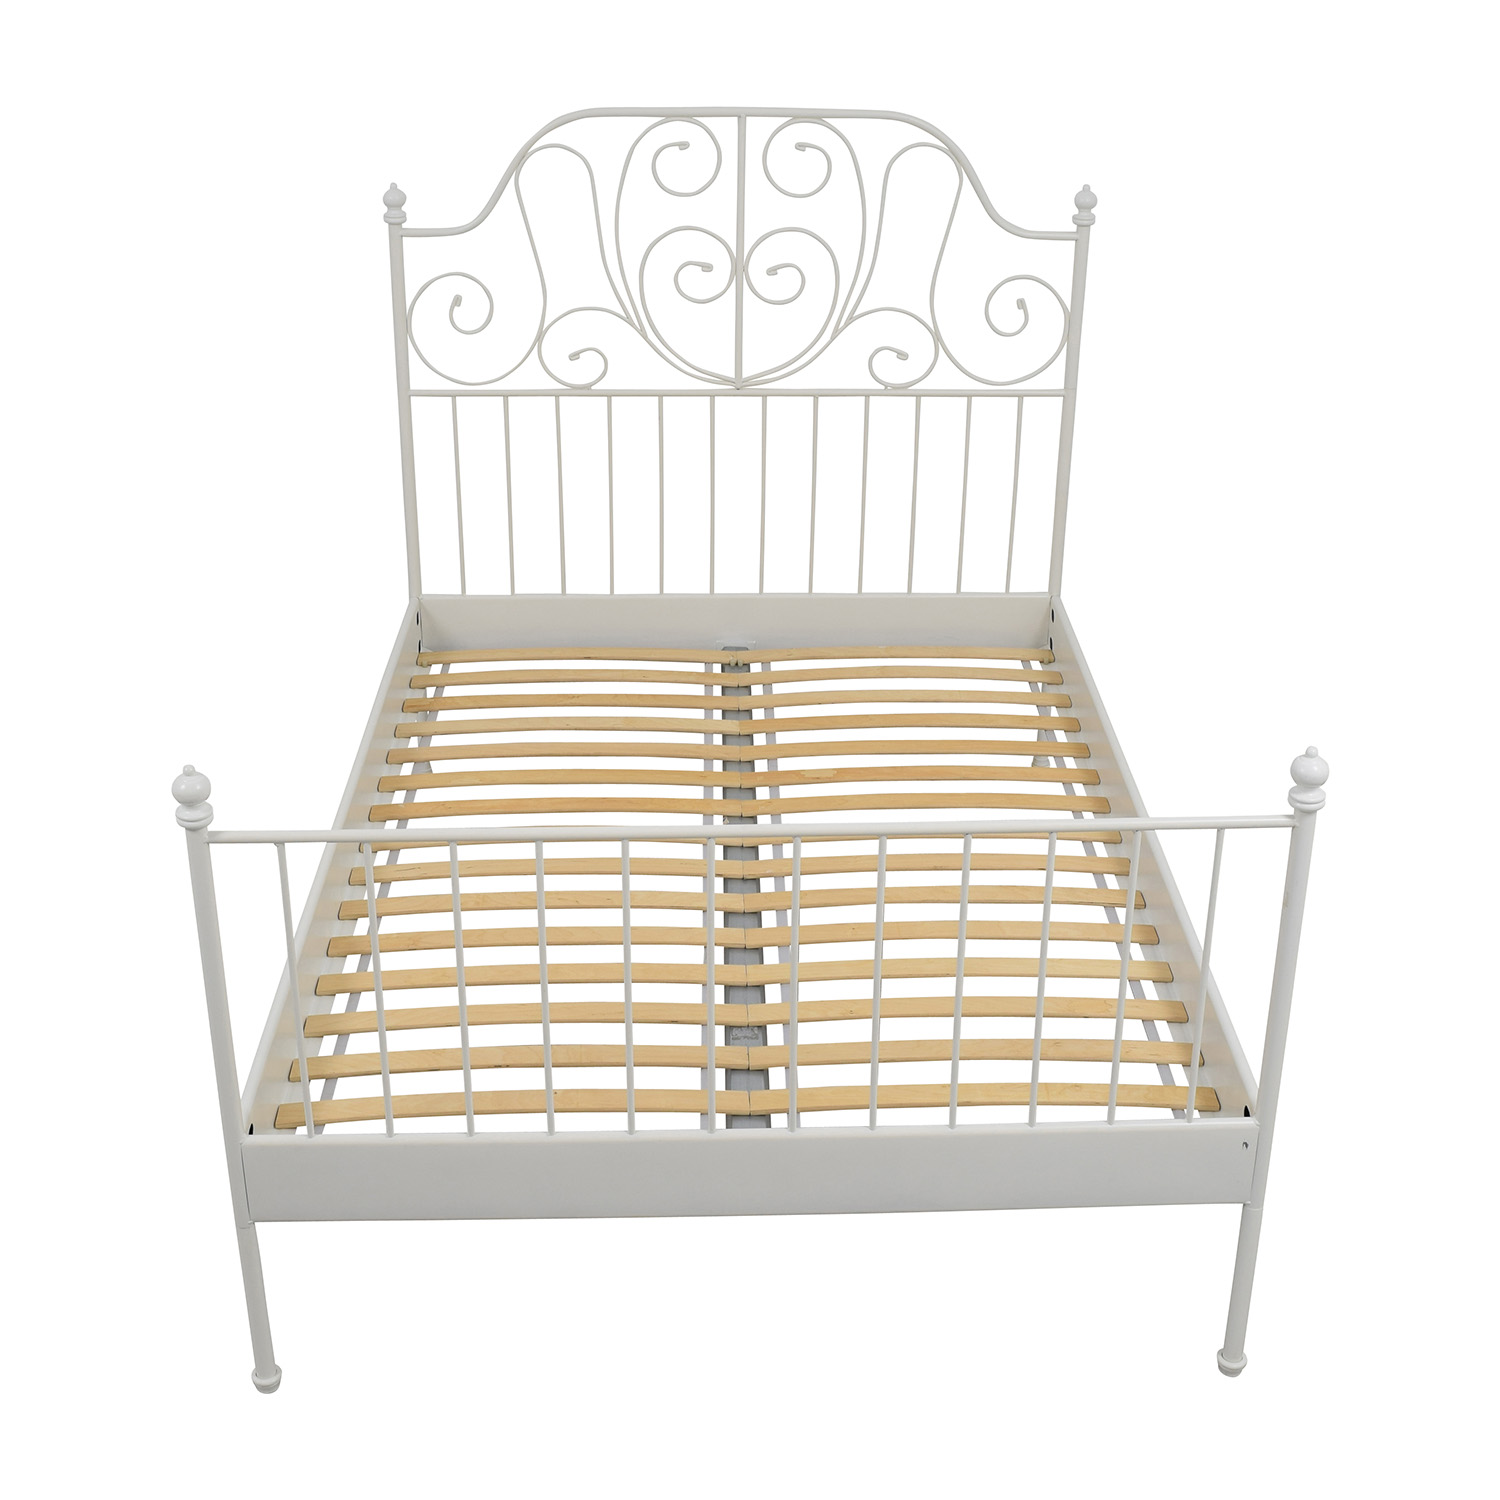 Full size bed frames avey bed frame rustic bedroom with for Full size bed frame